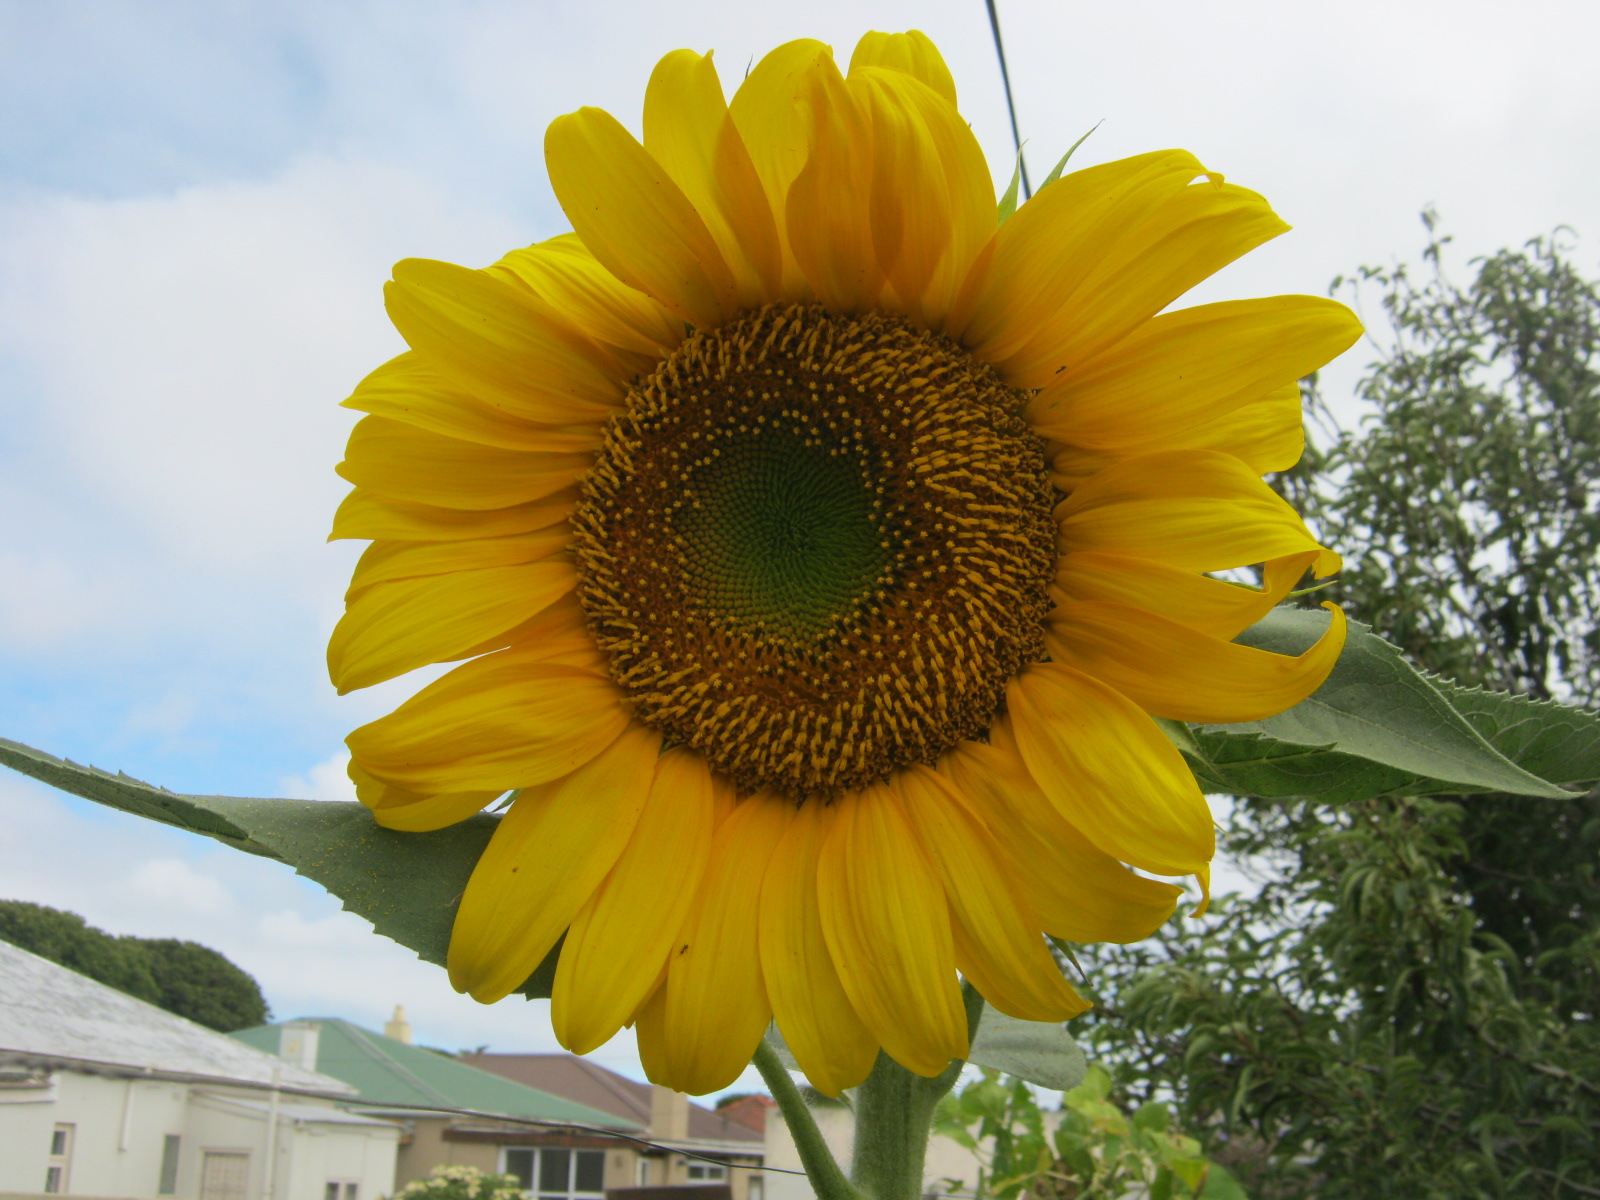 Growing your own fruit and vegetables like this giant sunflower is relaxing and ensures that you get some healthy food  directly from your garden onto your plate